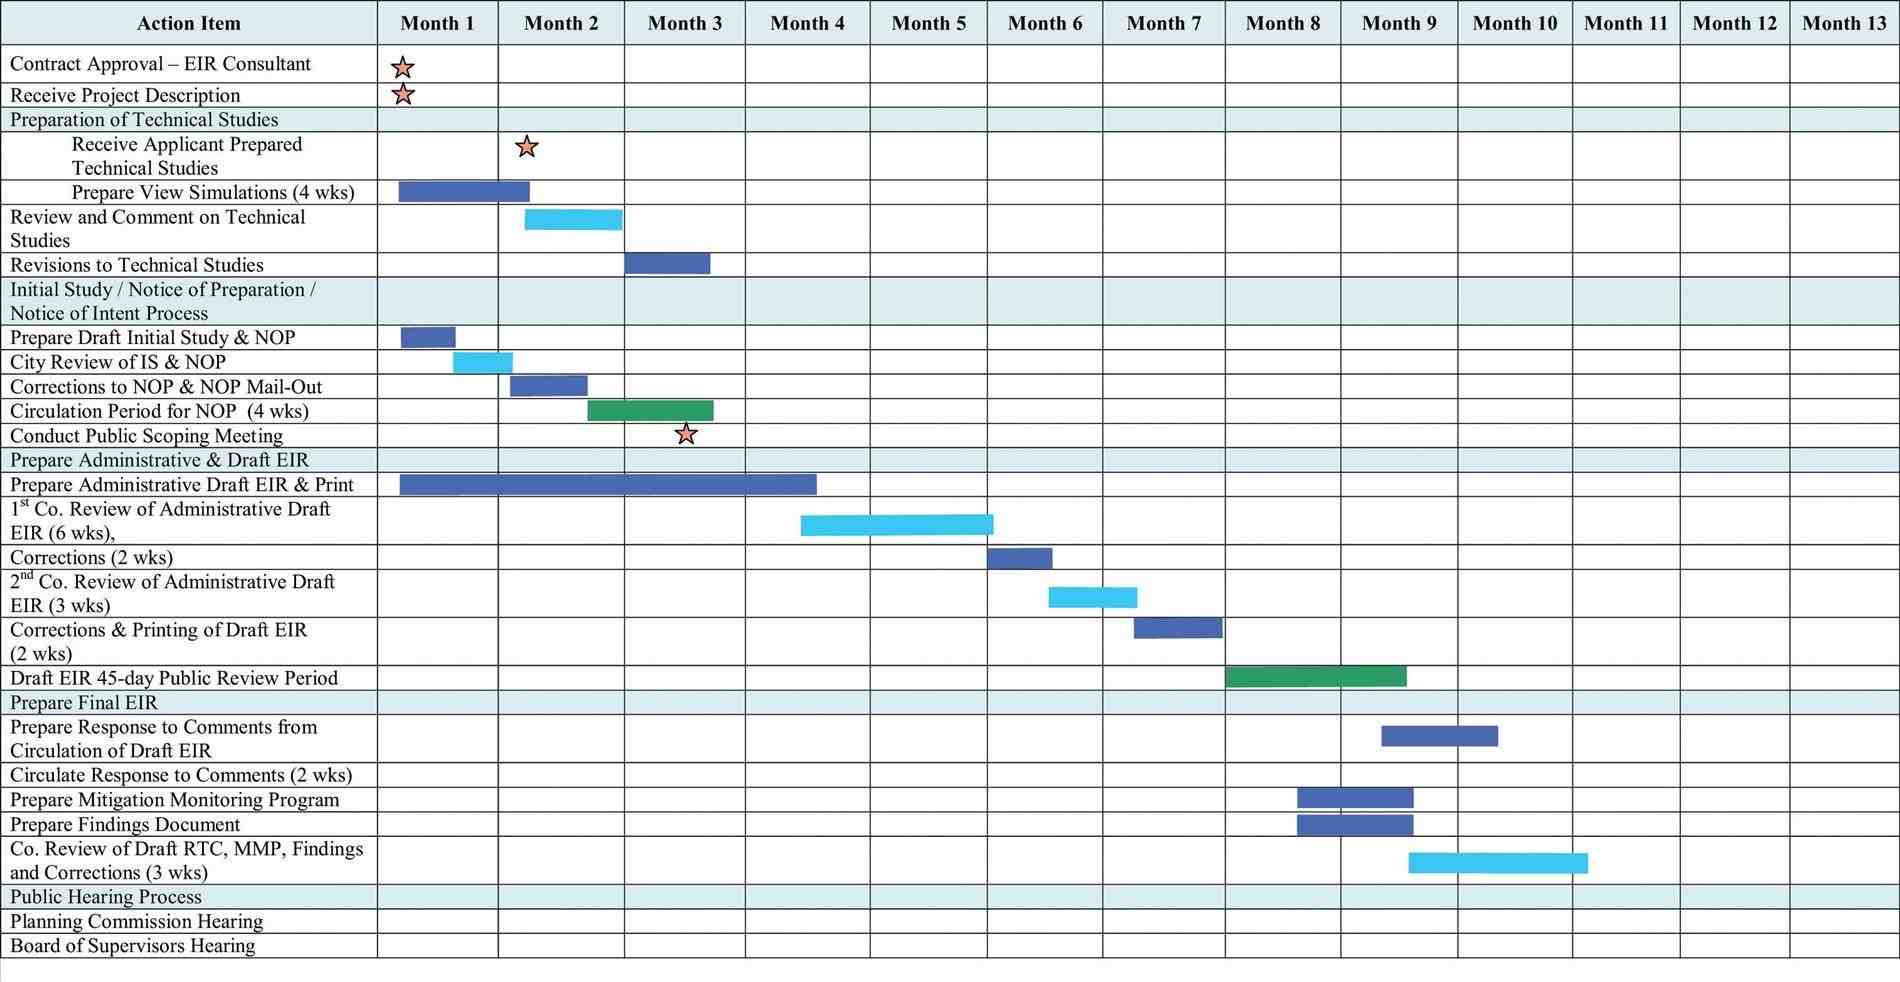 Free Download Gantt Chart Template For Excel gantt chart c program excel template rhkukkoblockcom microsoft free downloadrheasybusinessfinancenet microsoft Free Download Gantt